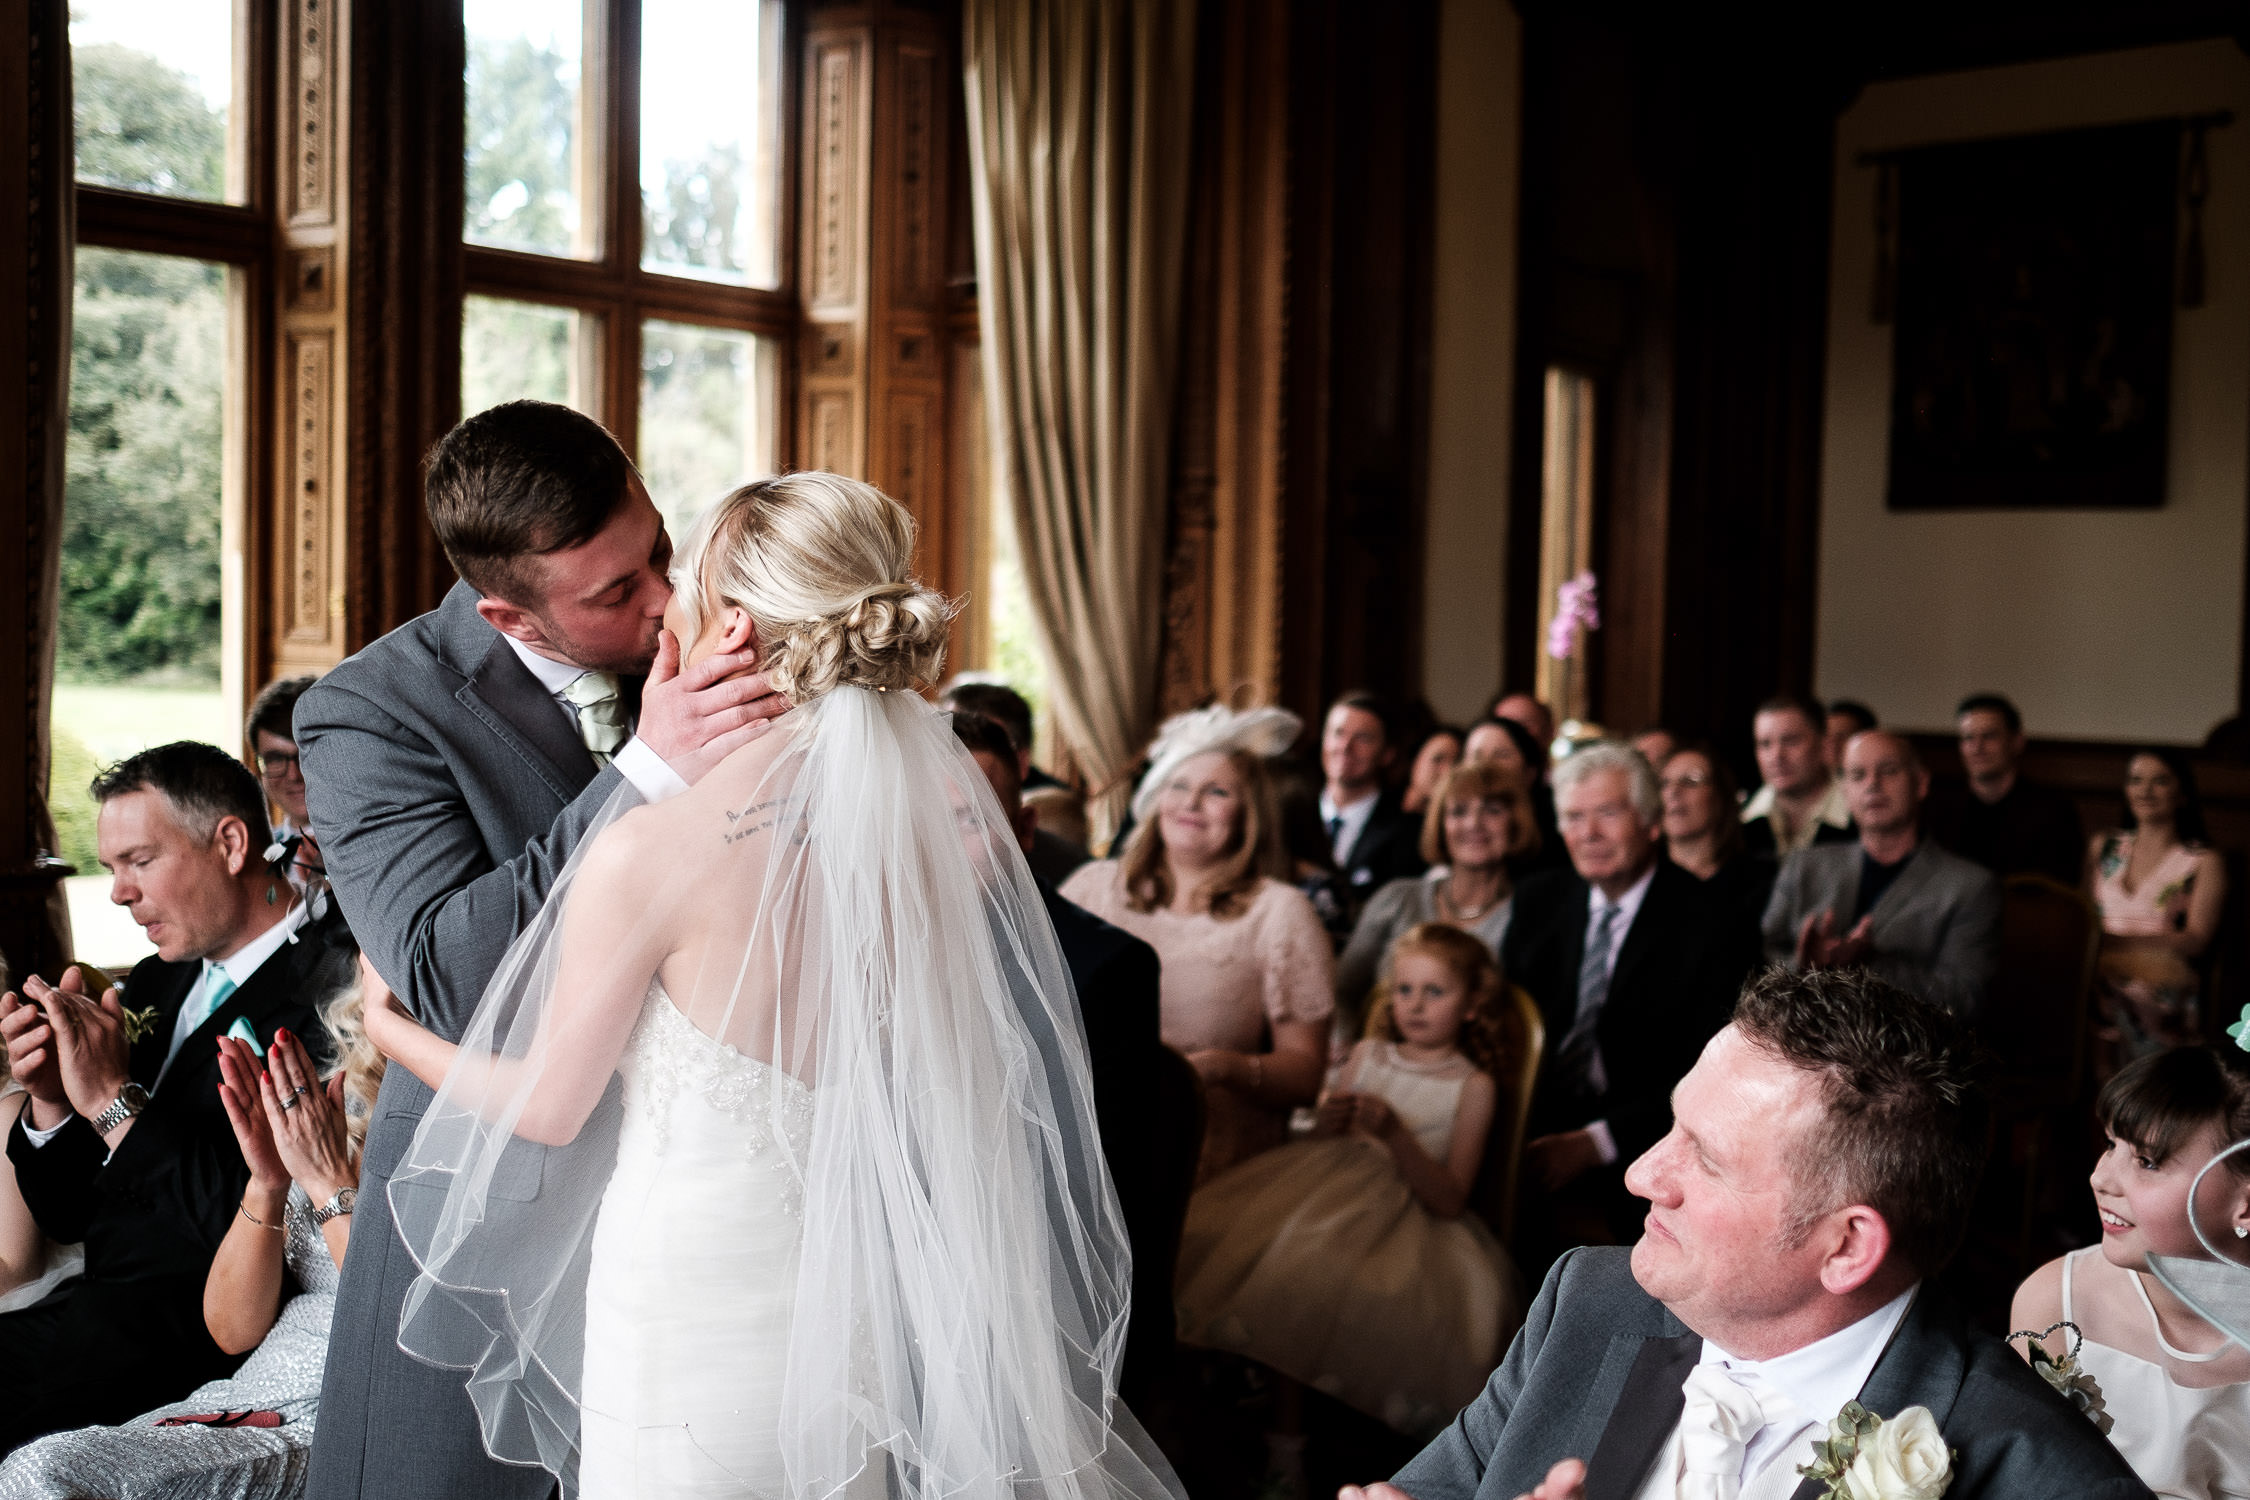 bride and groom kiss at end of ceremony